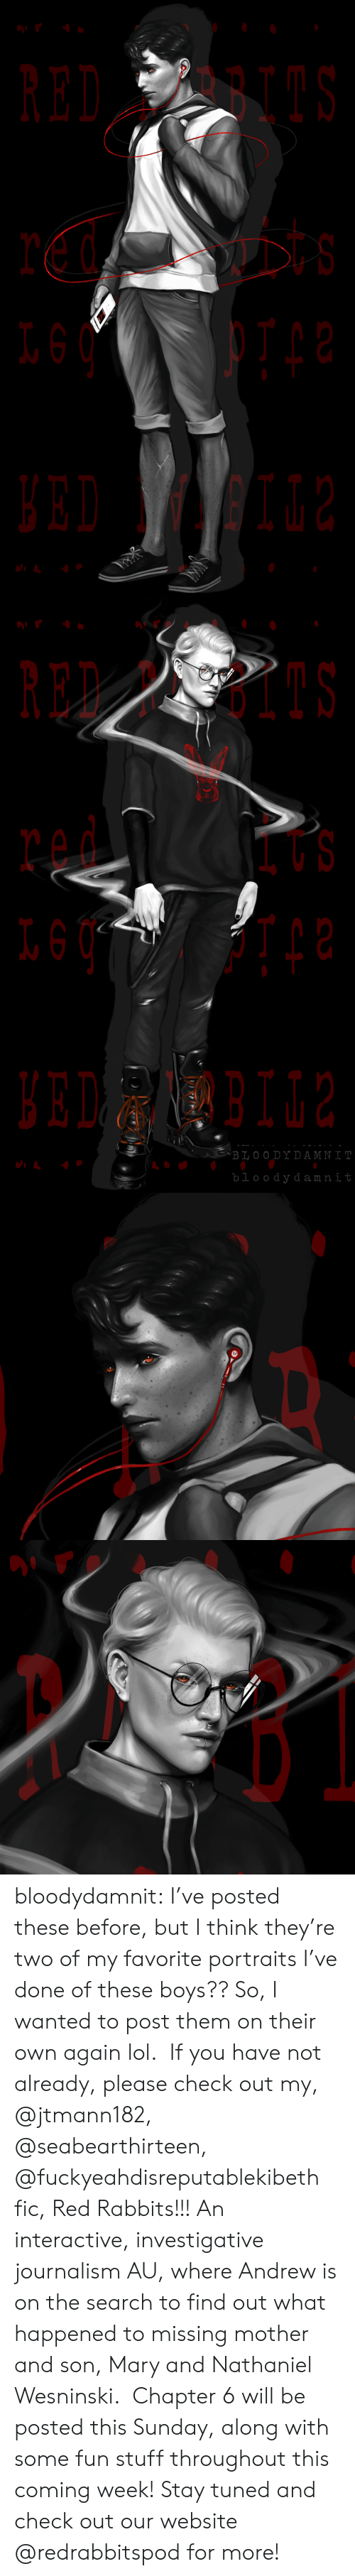 stay tuned: RED BI  t s   RED PBIIS  BLOO DYDAMNI  bloody damnit bloodydamnit: I've posted these before, but I think they're two of my favorite portraits I've done of these boys?? So, I wanted to post them on their own again lol. If you have not already, please check out my, @jtmann182, @seabearthirteen, @fuckyeahdisreputablekibeth fic, Red Rabbits!!! An interactive, investigative journalism AU, where Andrew is on the search to find out what happened to missing mother and son, Mary and Nathaniel Wesninski. Chapter 6 will be posted this Sunday, along with some fun stuff throughout this coming week! Stay tuned and check out our website @redrabbitspod for more!